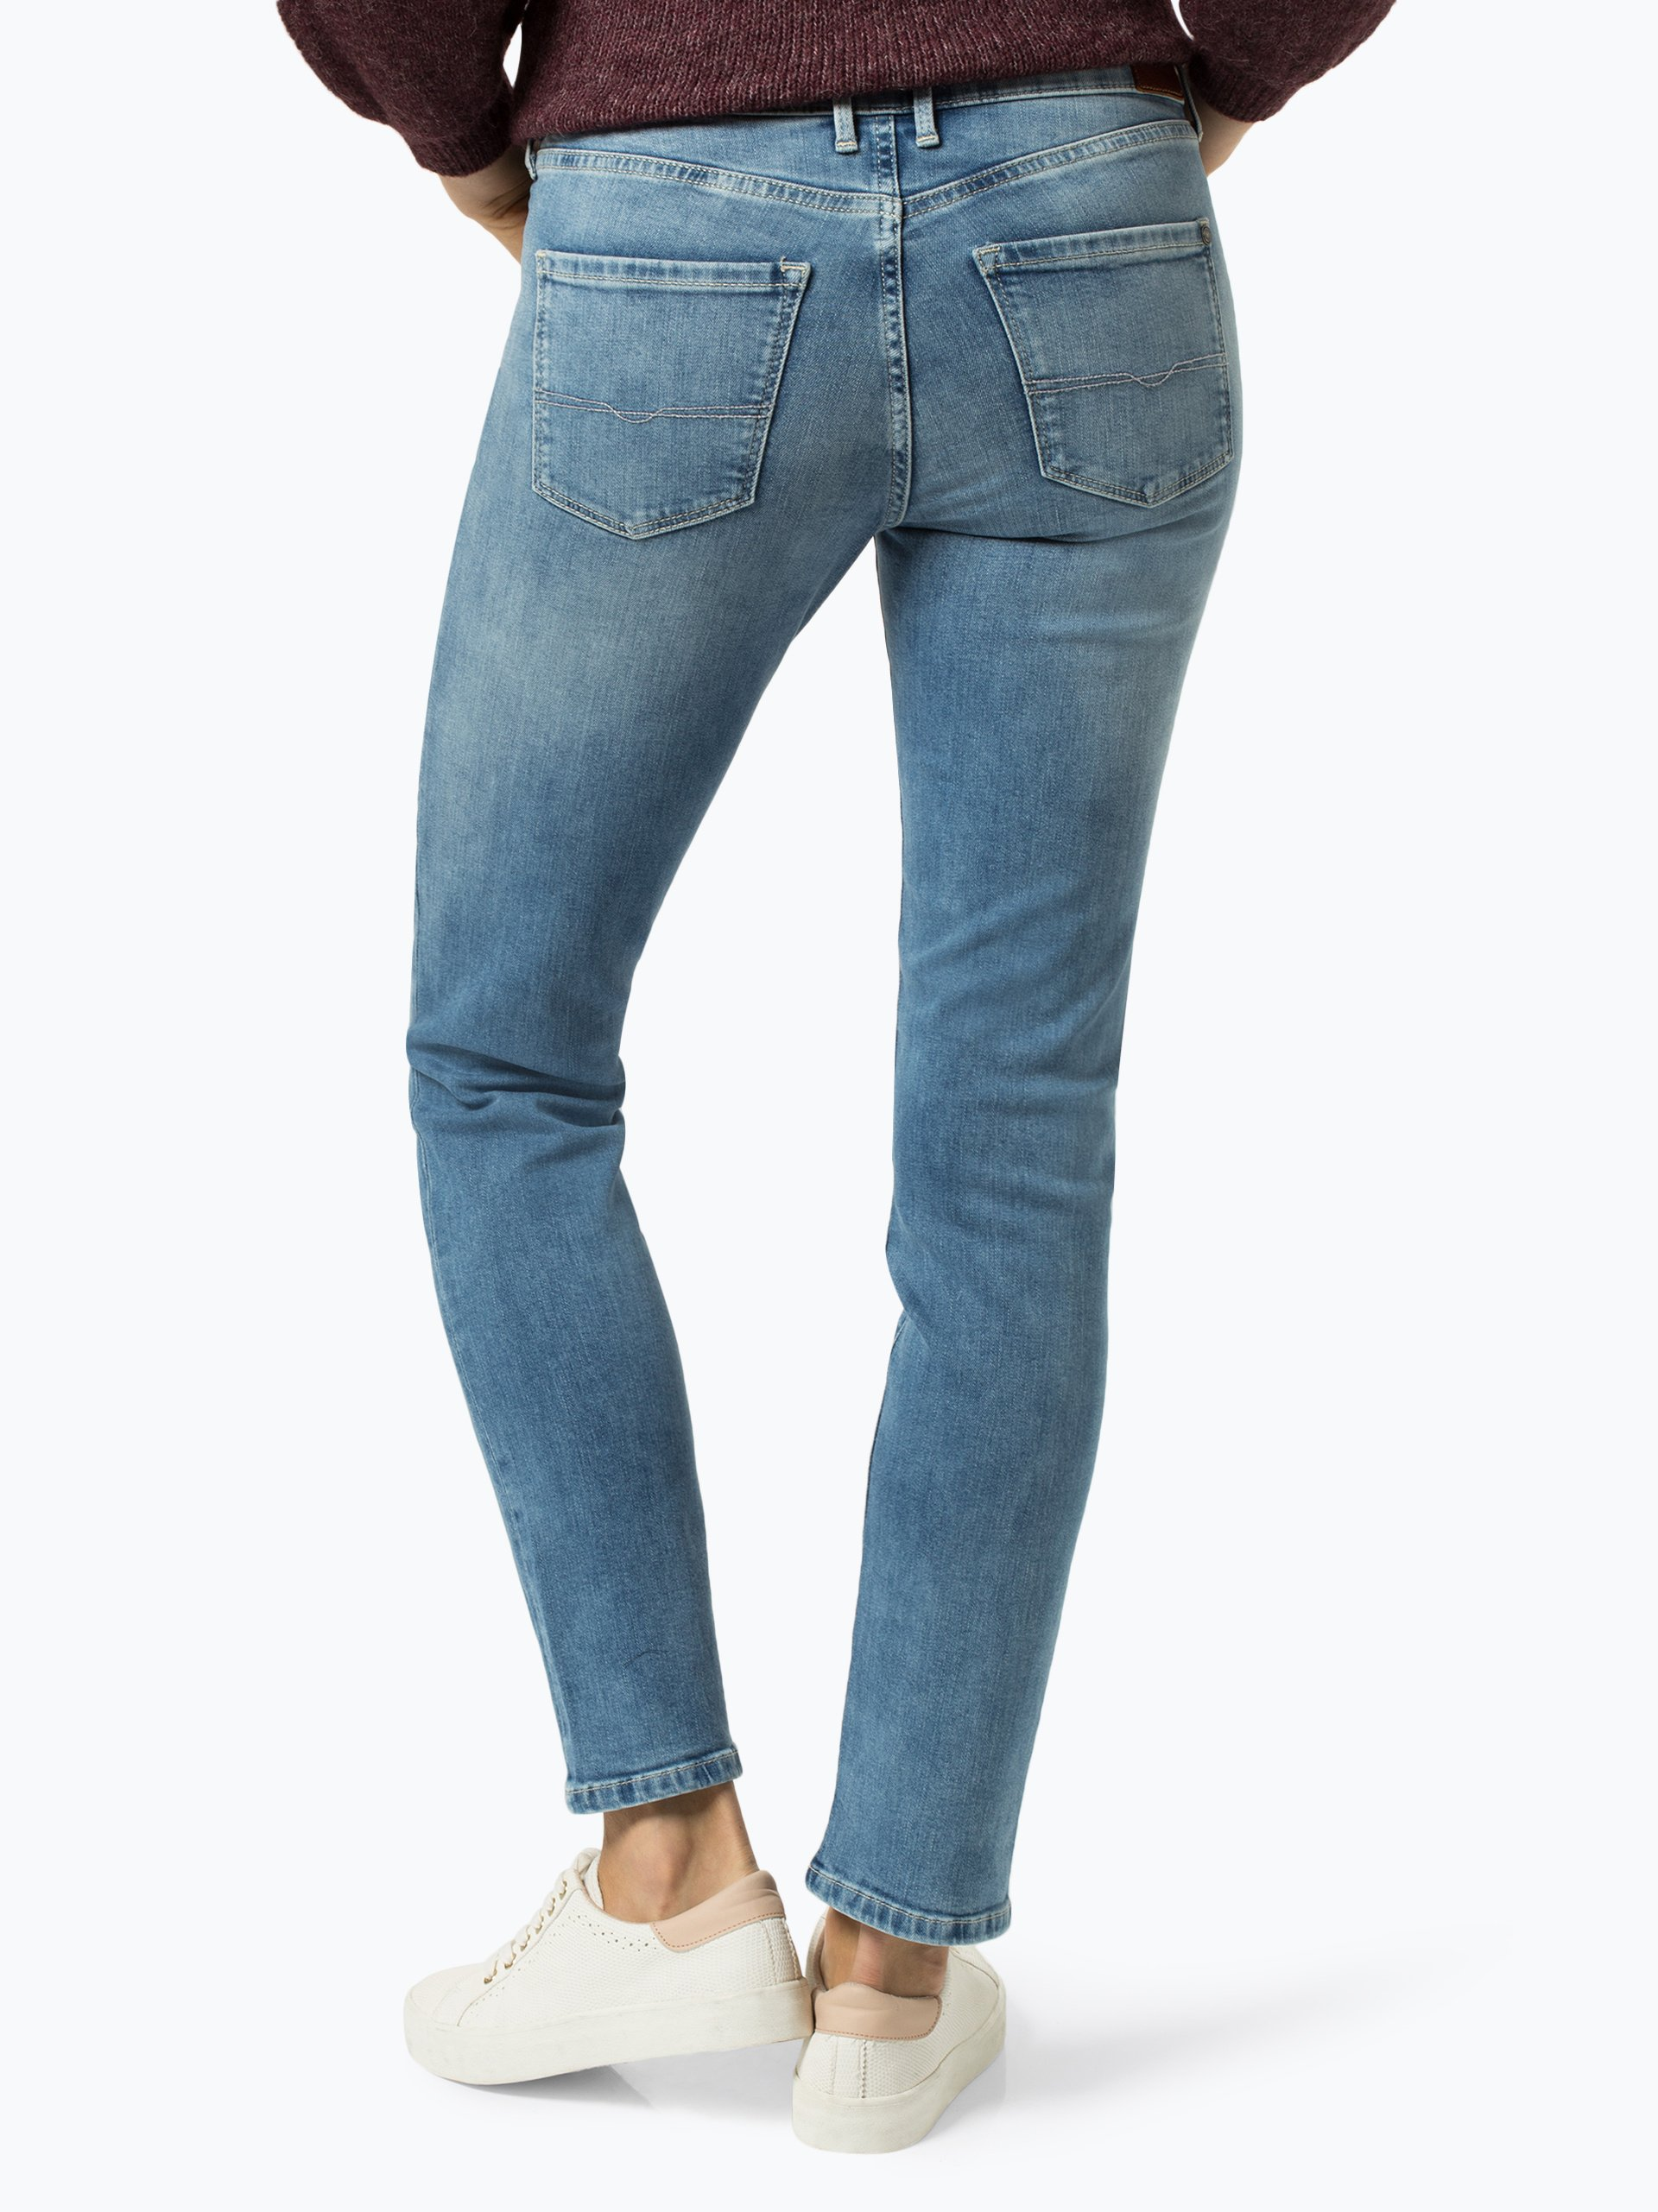 Pepe Jeans Damen Jeans - Lucy